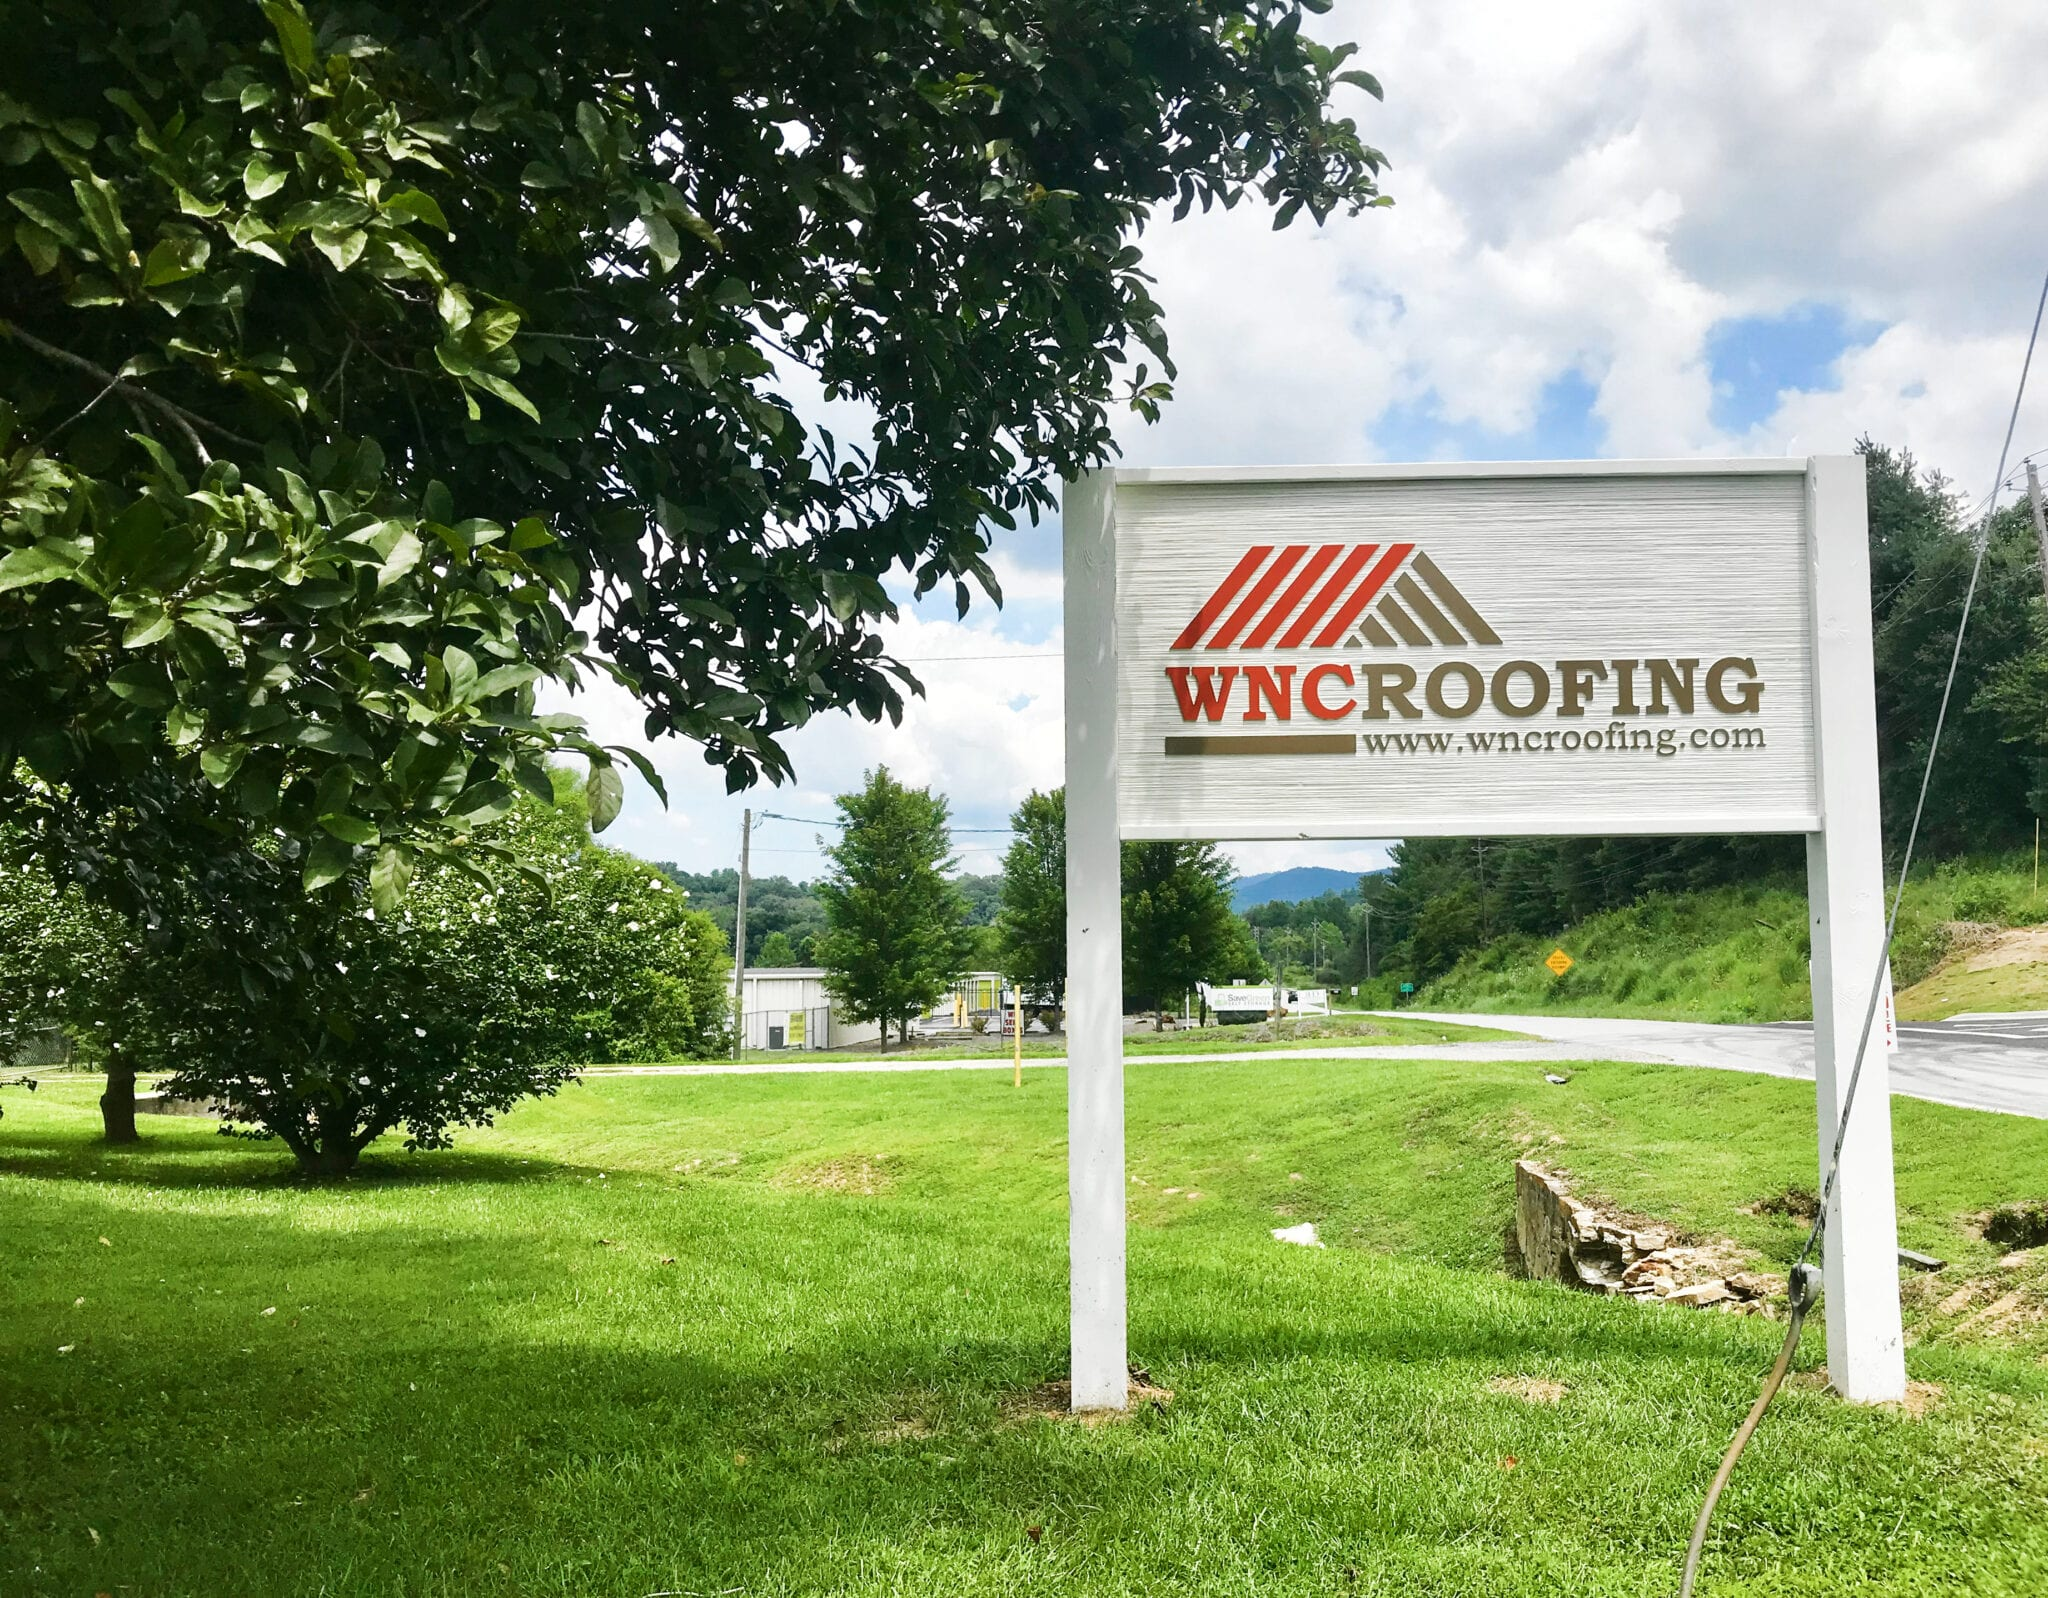 New WNC Roofing office sign standing on front lawn